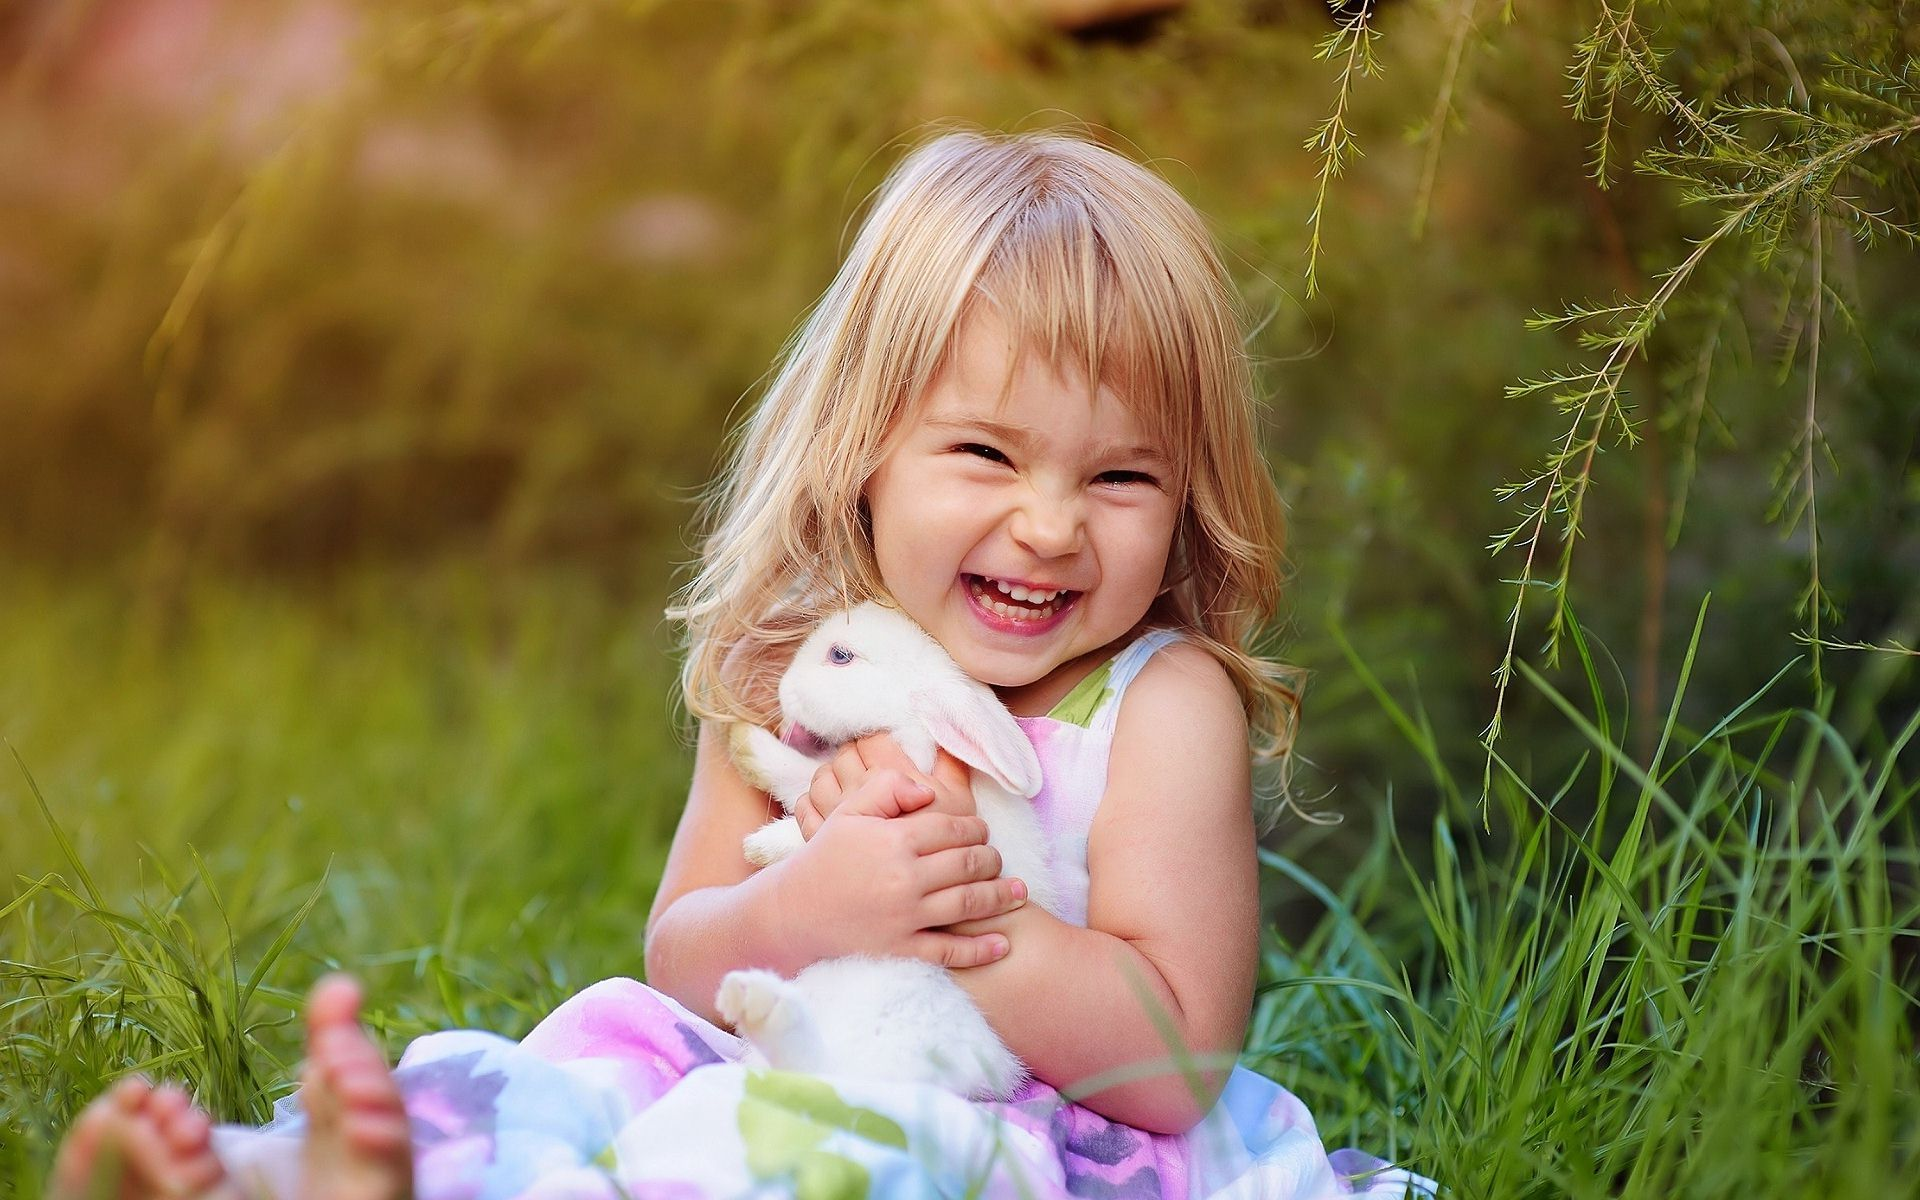 Cute Smiling Child Girl With Rabbit Wallpaper,Images,Pictures,Photos ...